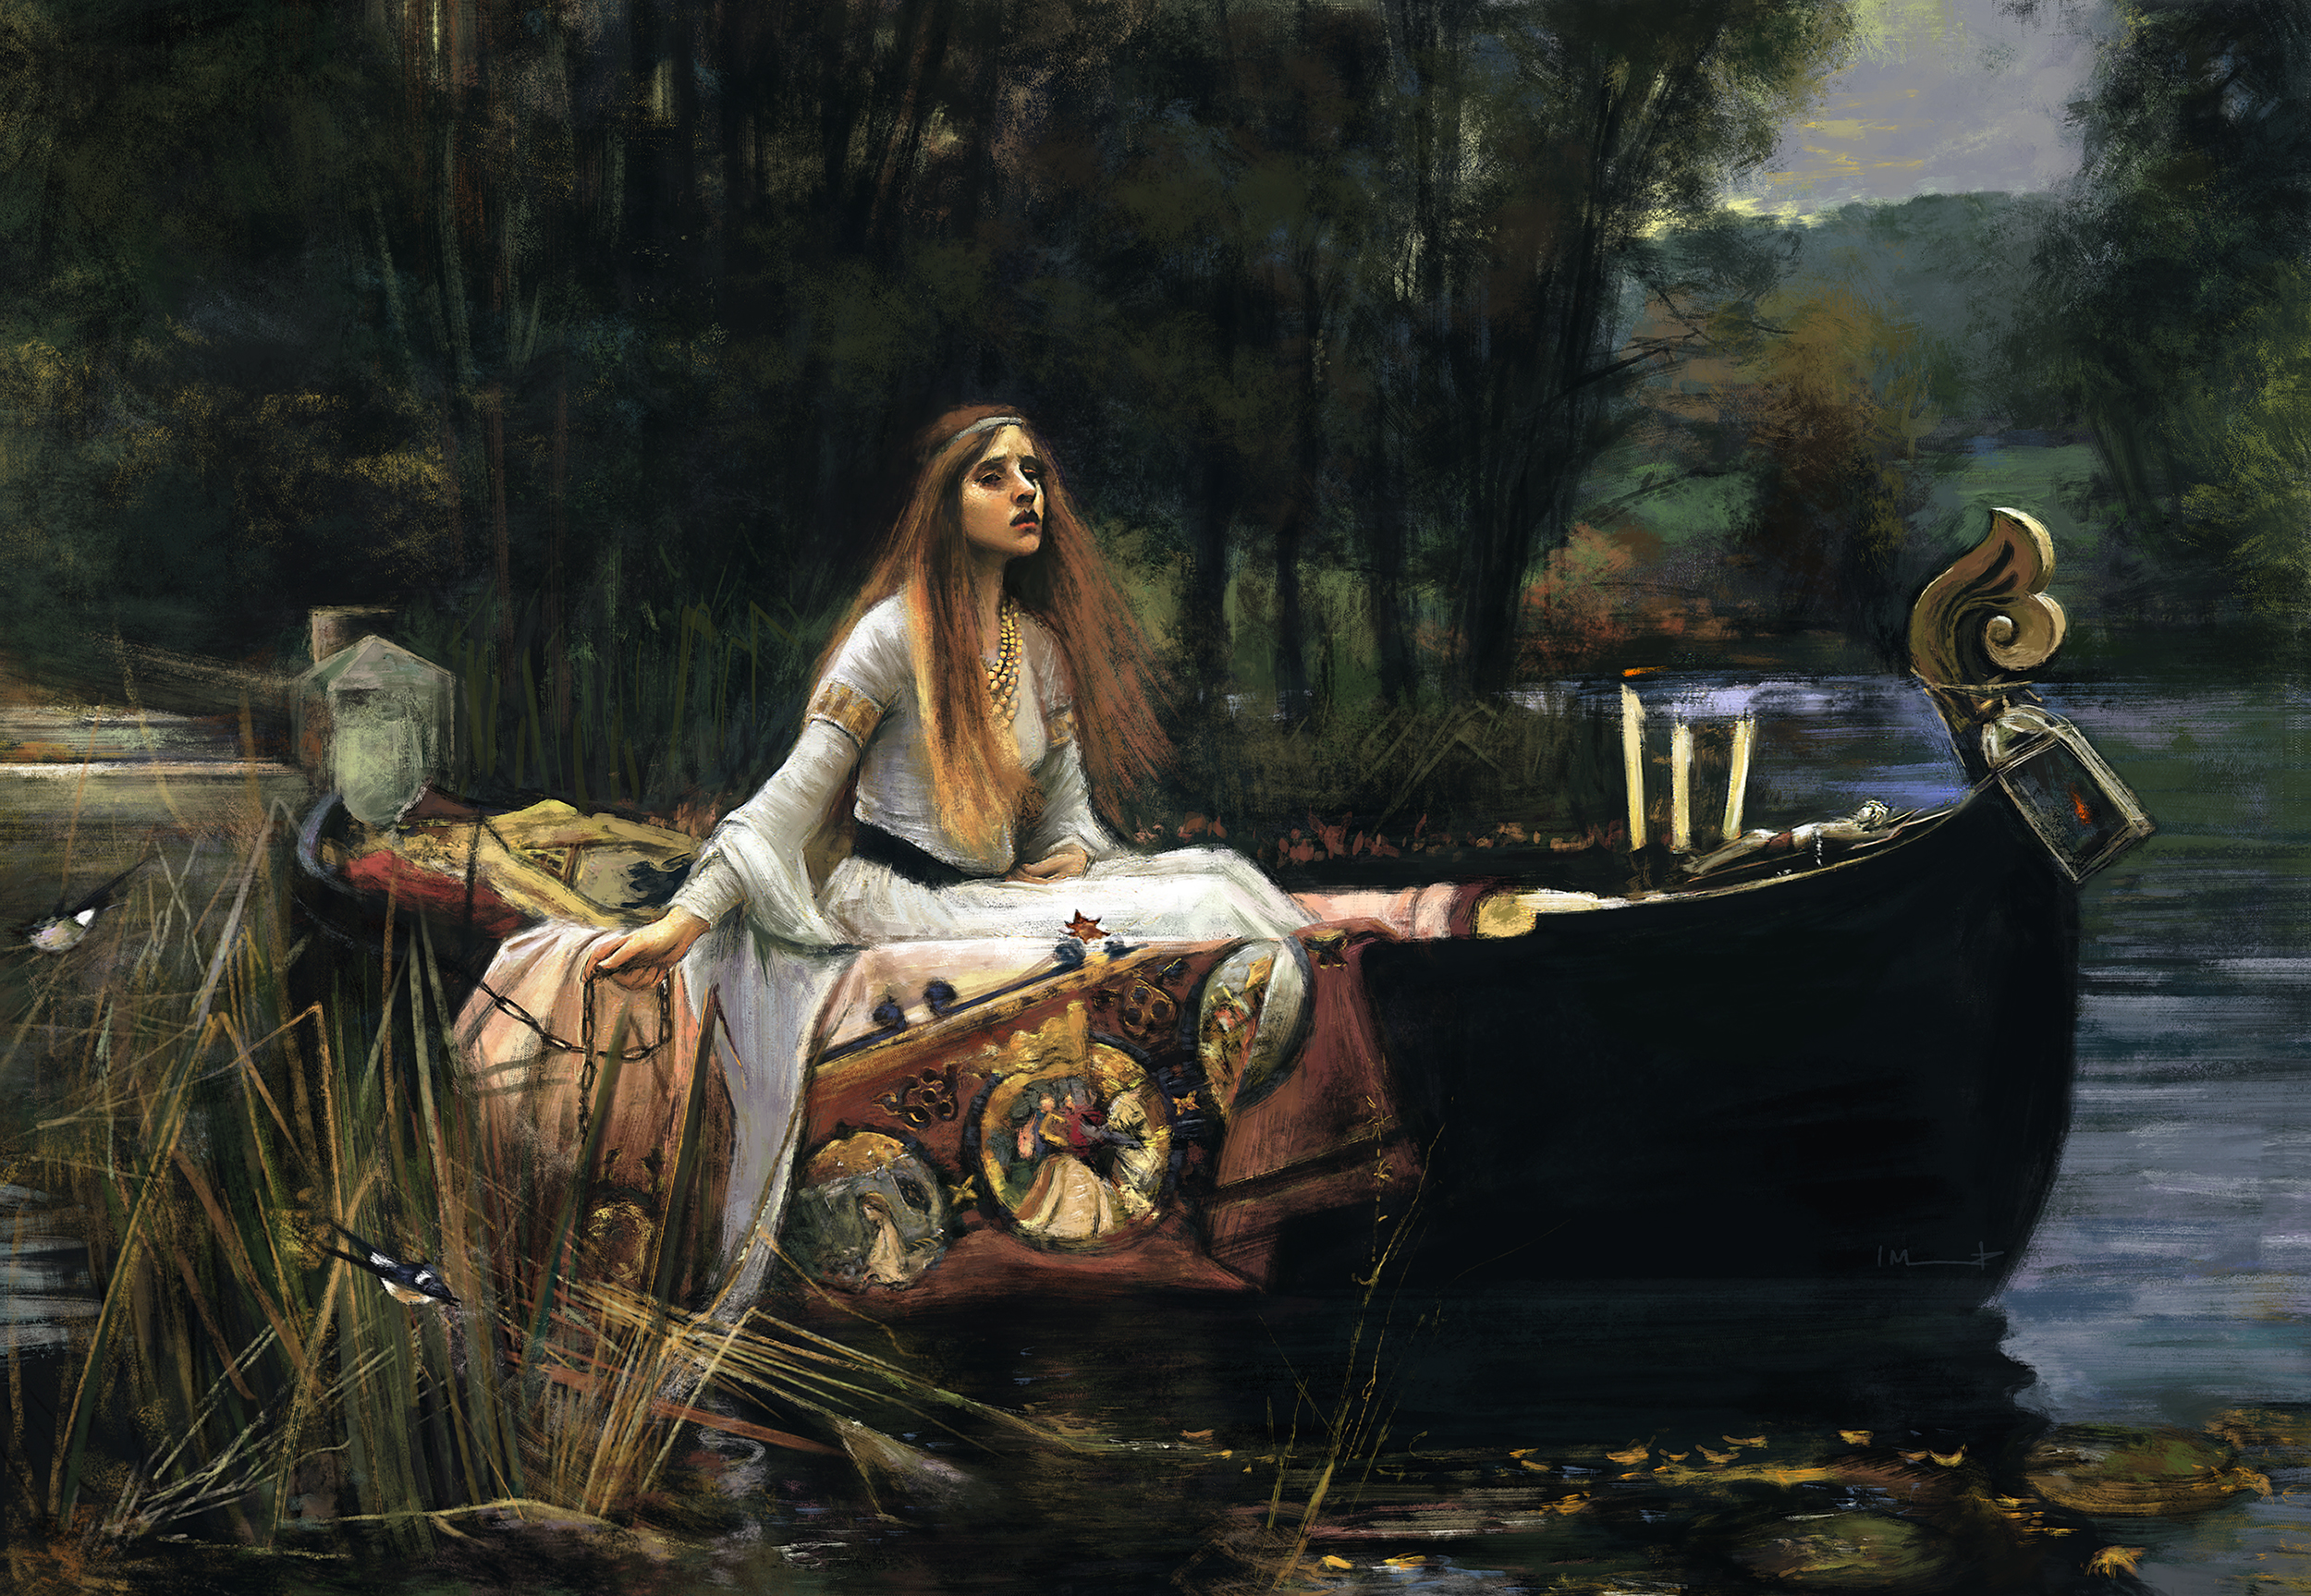 a literary analysis of the lady of shalott in the crucible From verse to visual: an analysis of alfred tennyson and william holman hunt's the lady of shalott to ken daley who helped me see things from a literary point.